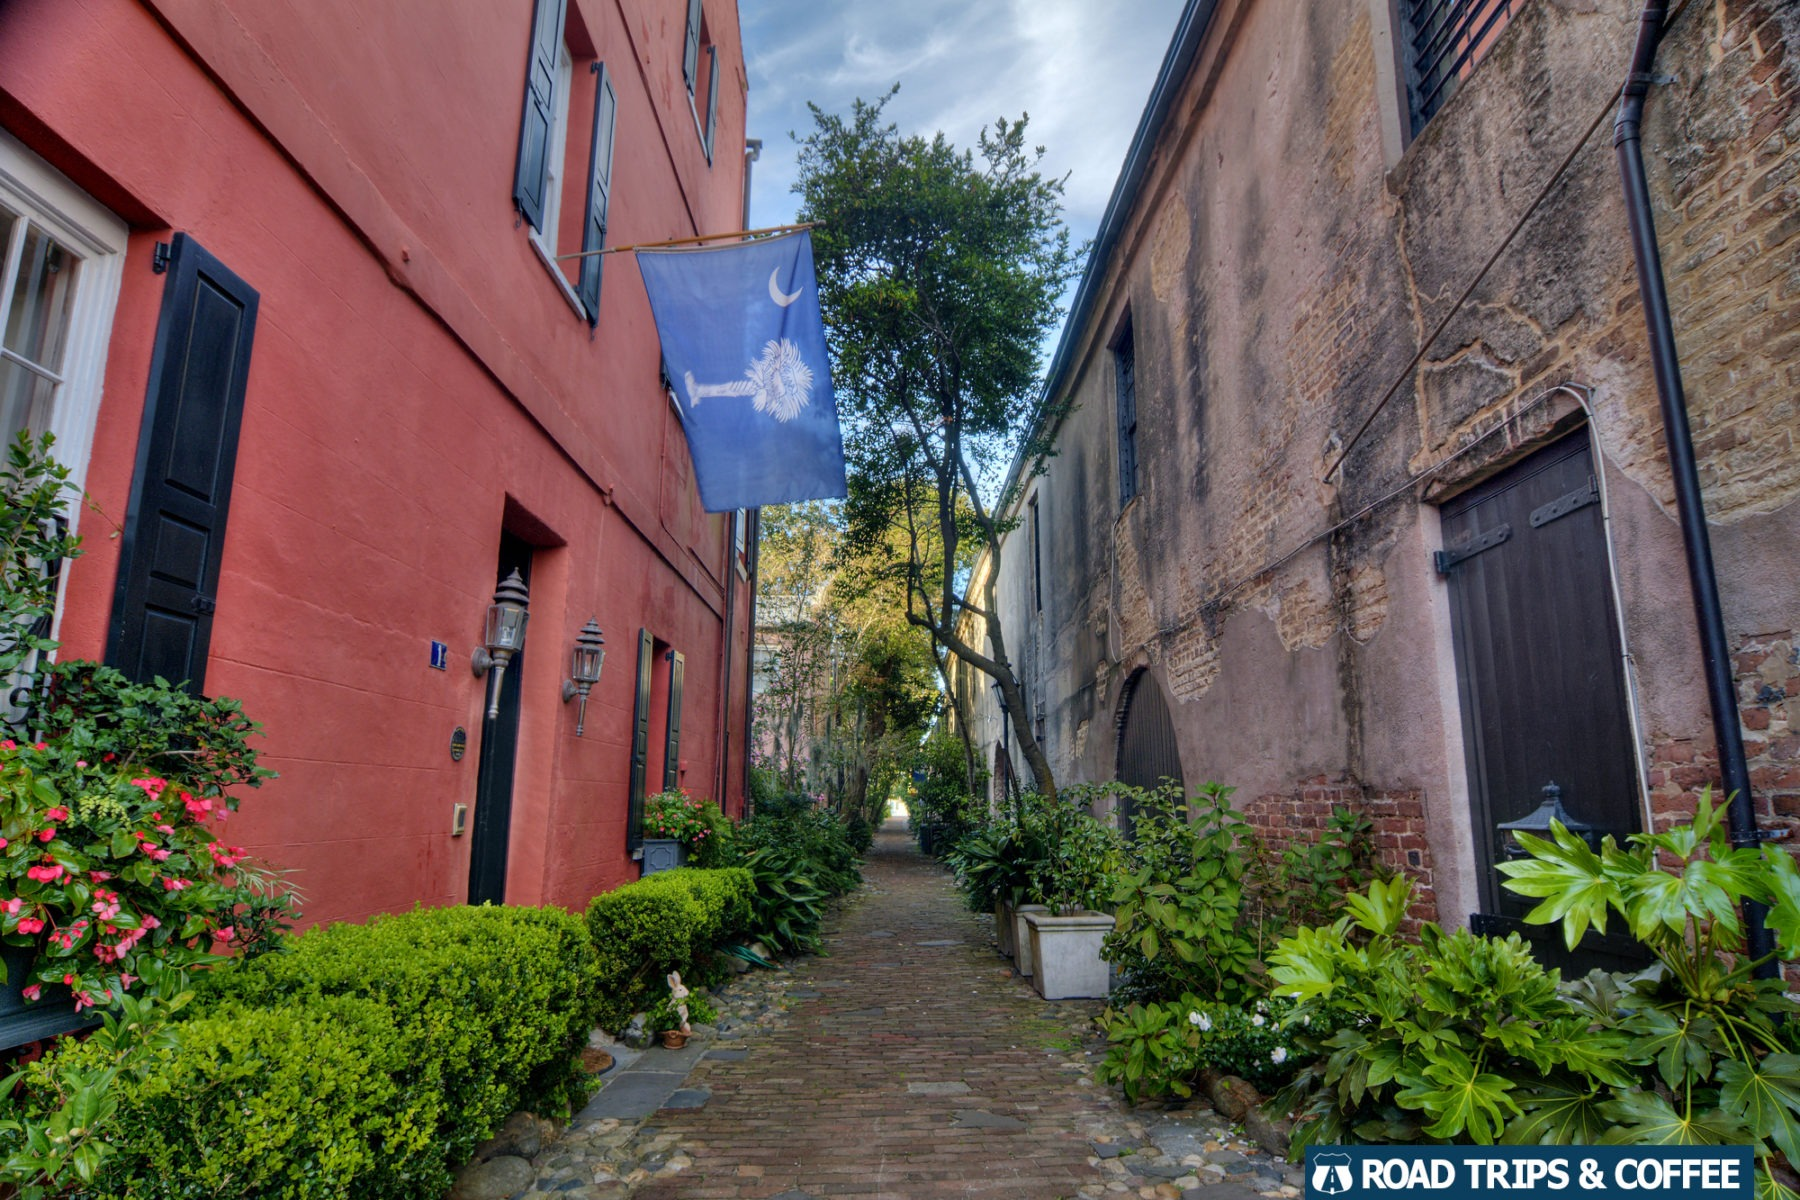 A vibrant pink wall of a brick alley in downtown Charleston, South Carolina